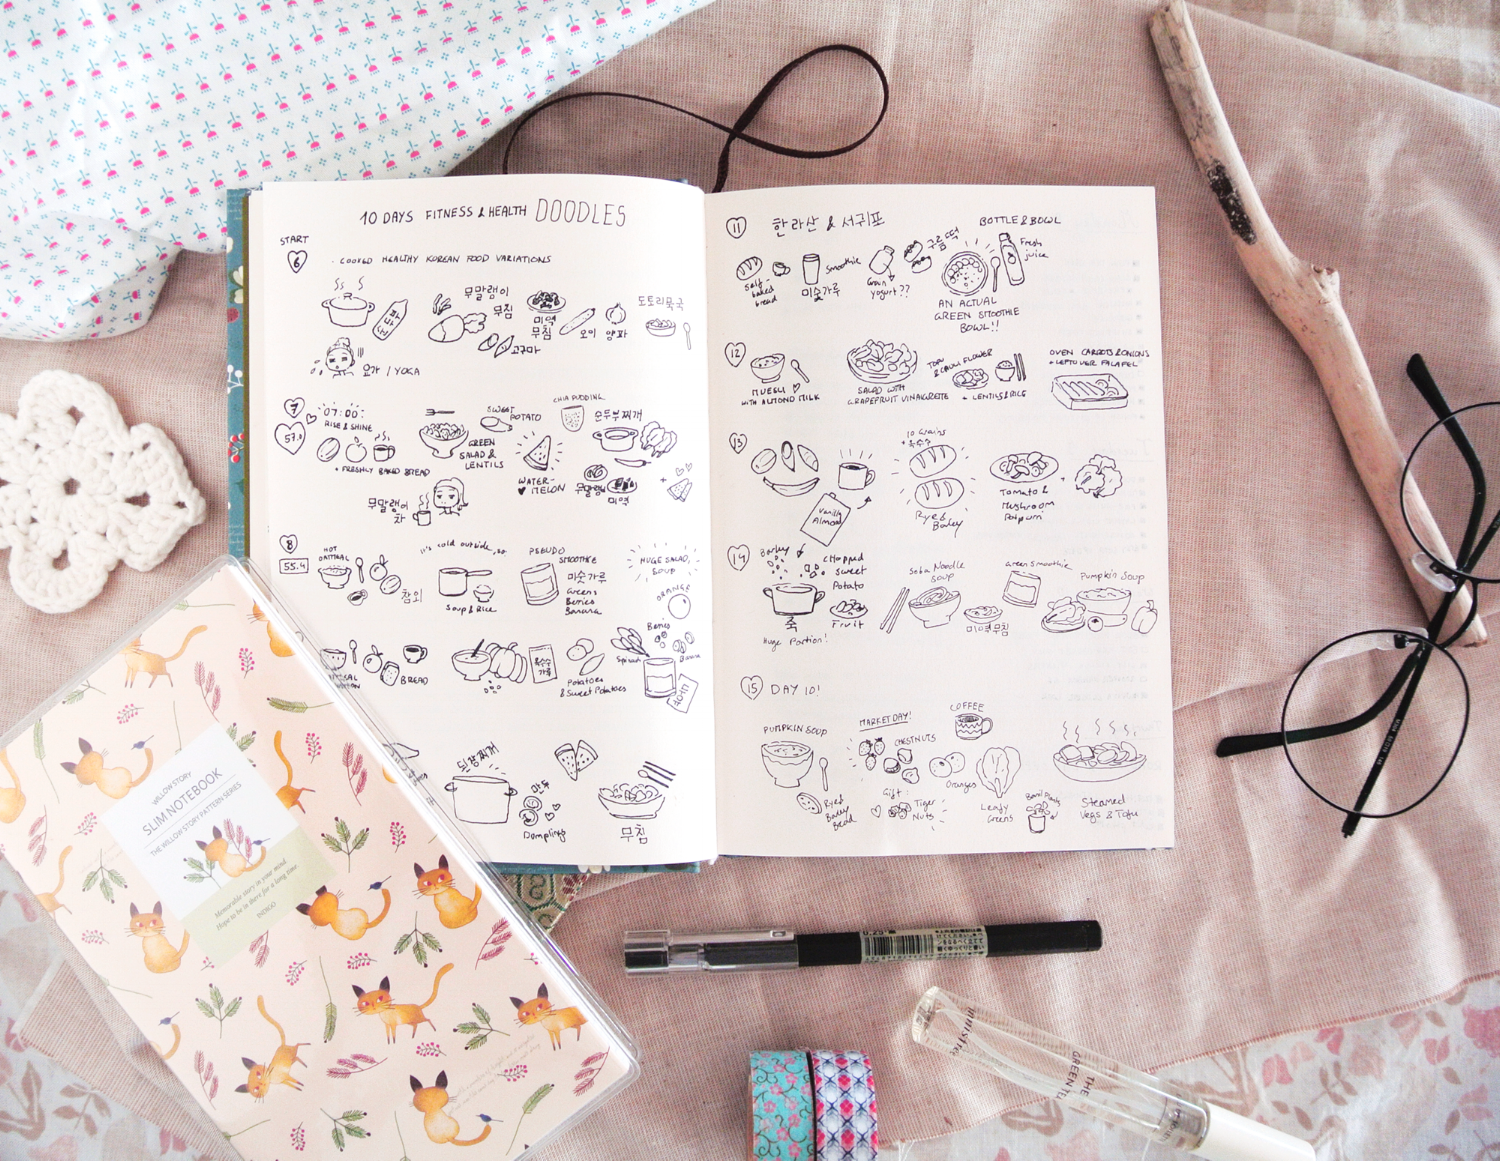 Meal planning and food diary in my bullet journal. I keep a food diary to remind myself of what I've eaten, which recipes I should try again, and to see if I had a variety of healthy food over the week.